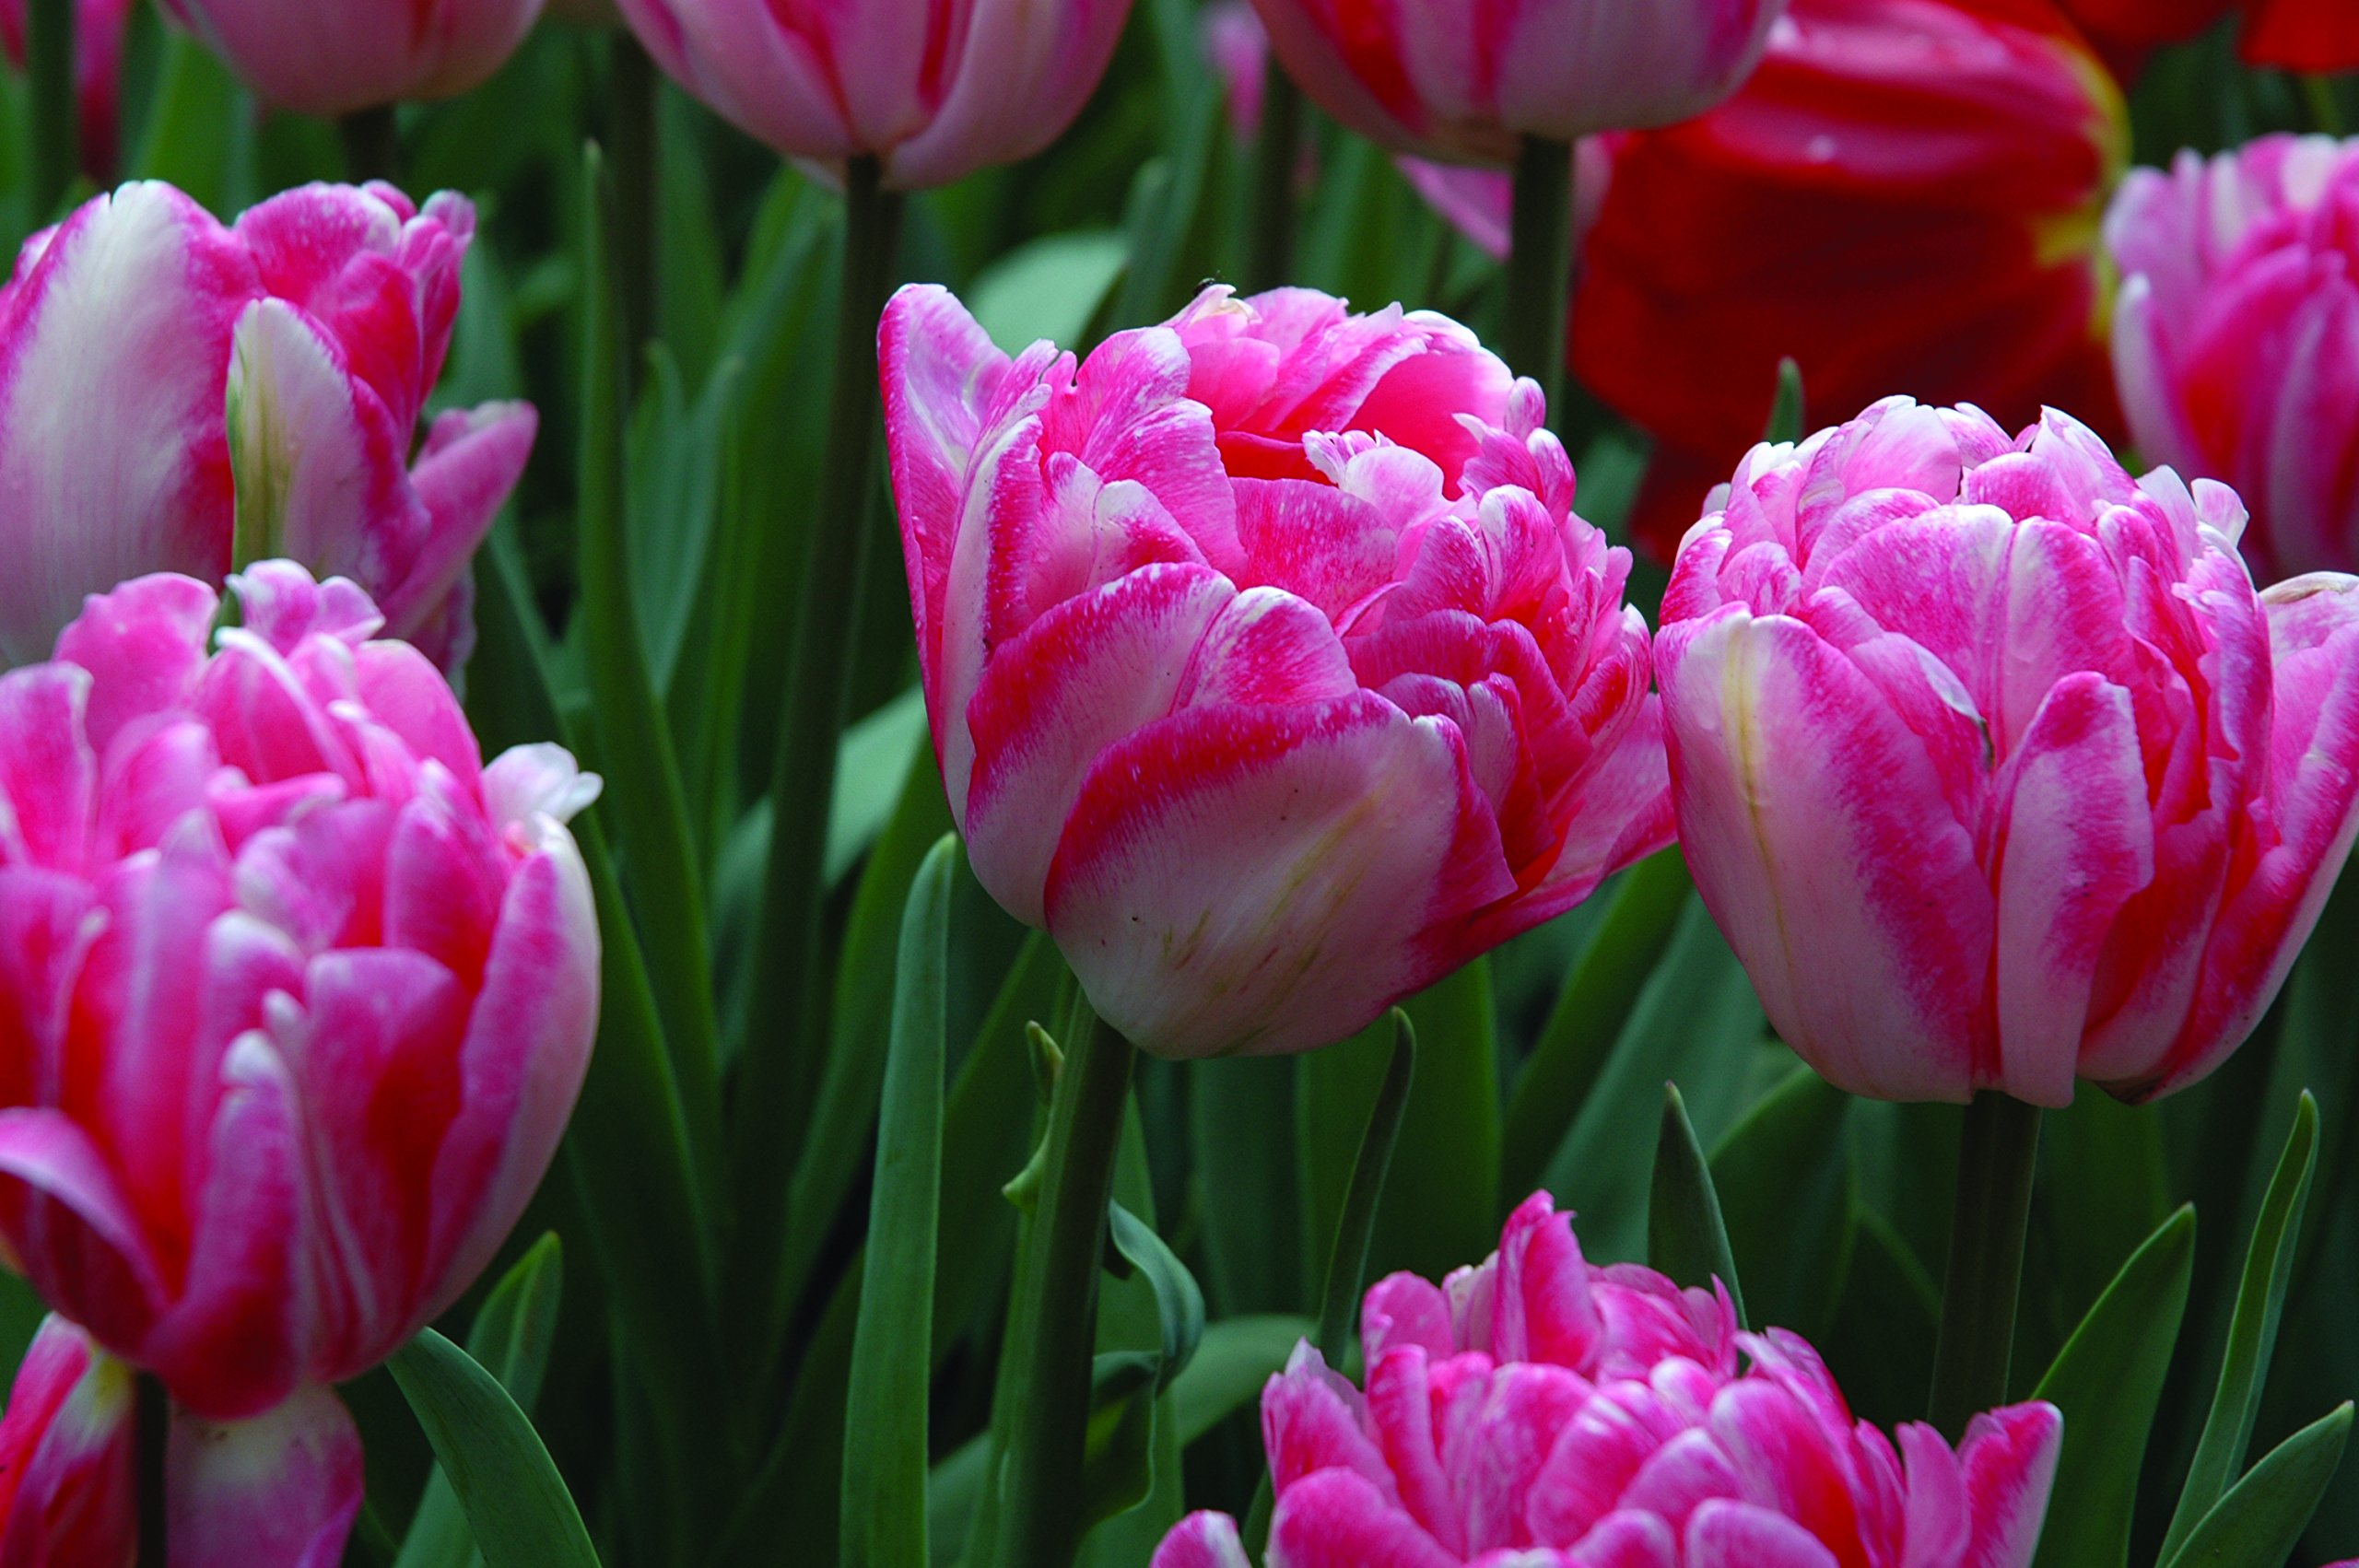 Burpee's Foxtrot Tulip - 10 Flower Bulbs | Double Pink and Rose | 12 - 14 cm Diameter